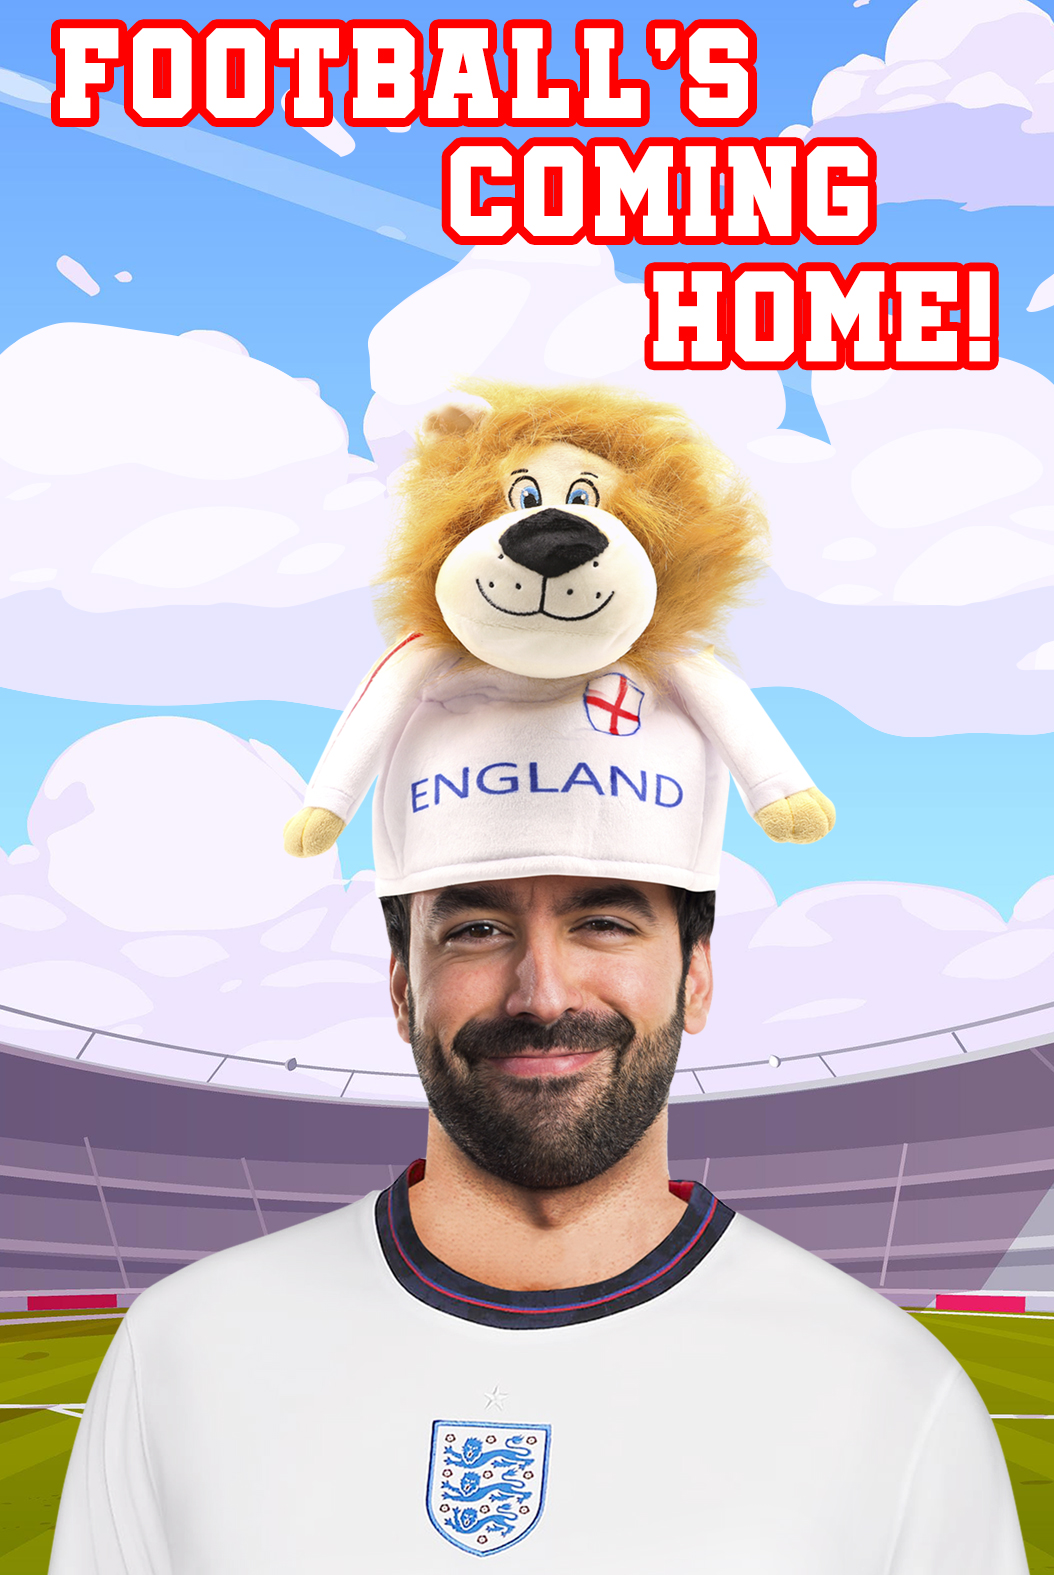 Footalls Coming Home